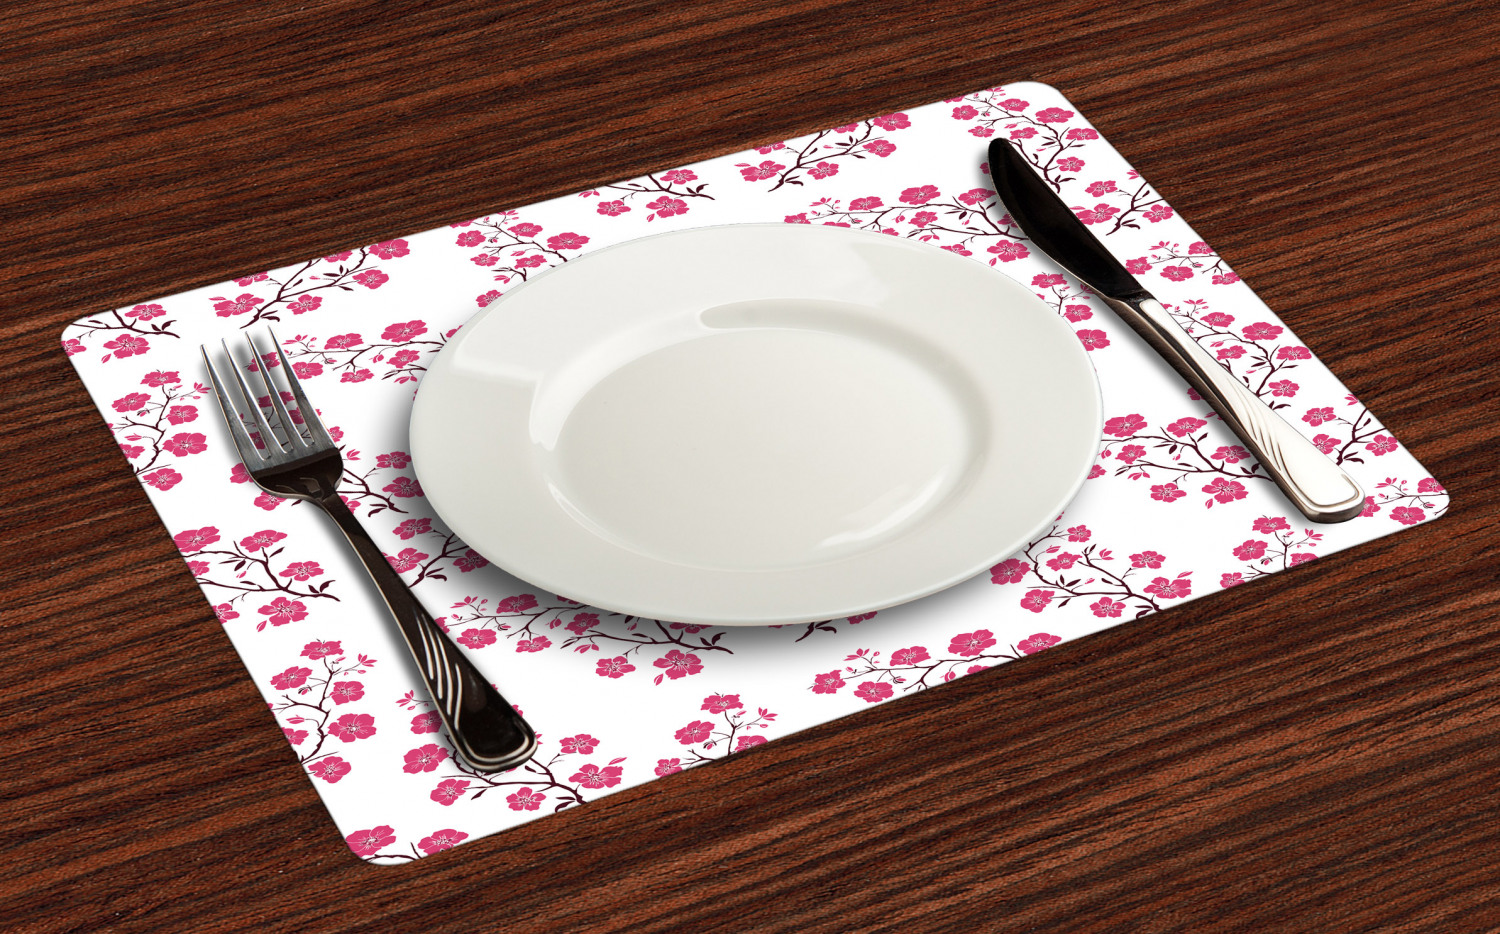 Ambesonne-Flower-Pattern-Placemat-Set-of-4-Fabric-Place-Mats-for-Table-Decor thumbnail 225